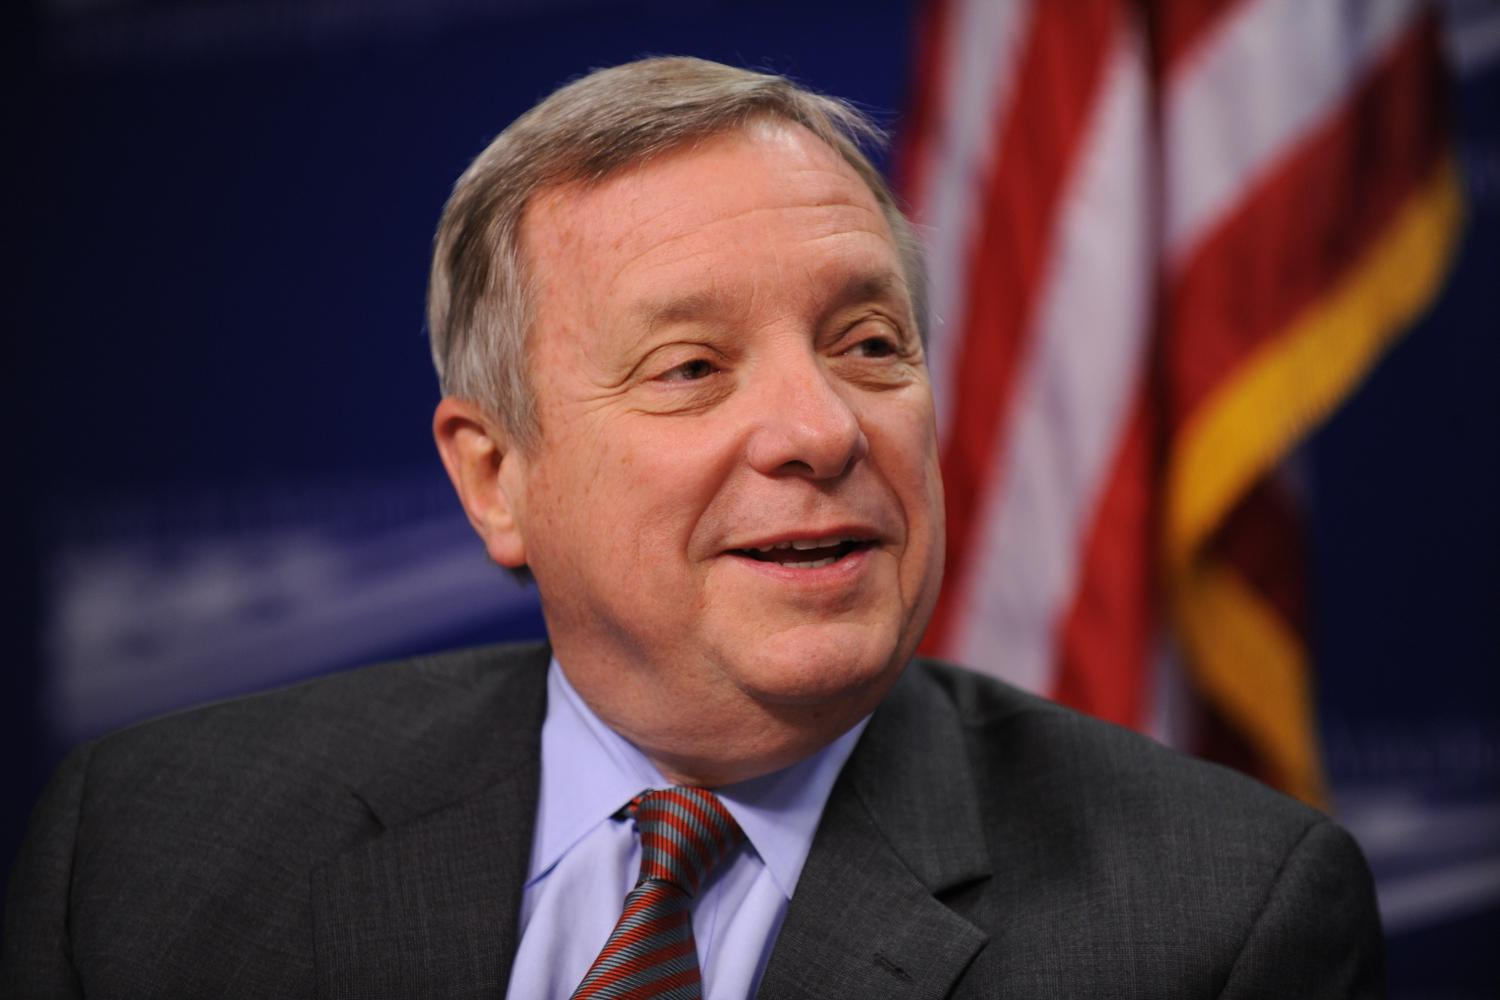 Illinois+Sen.+Dick+Durbin